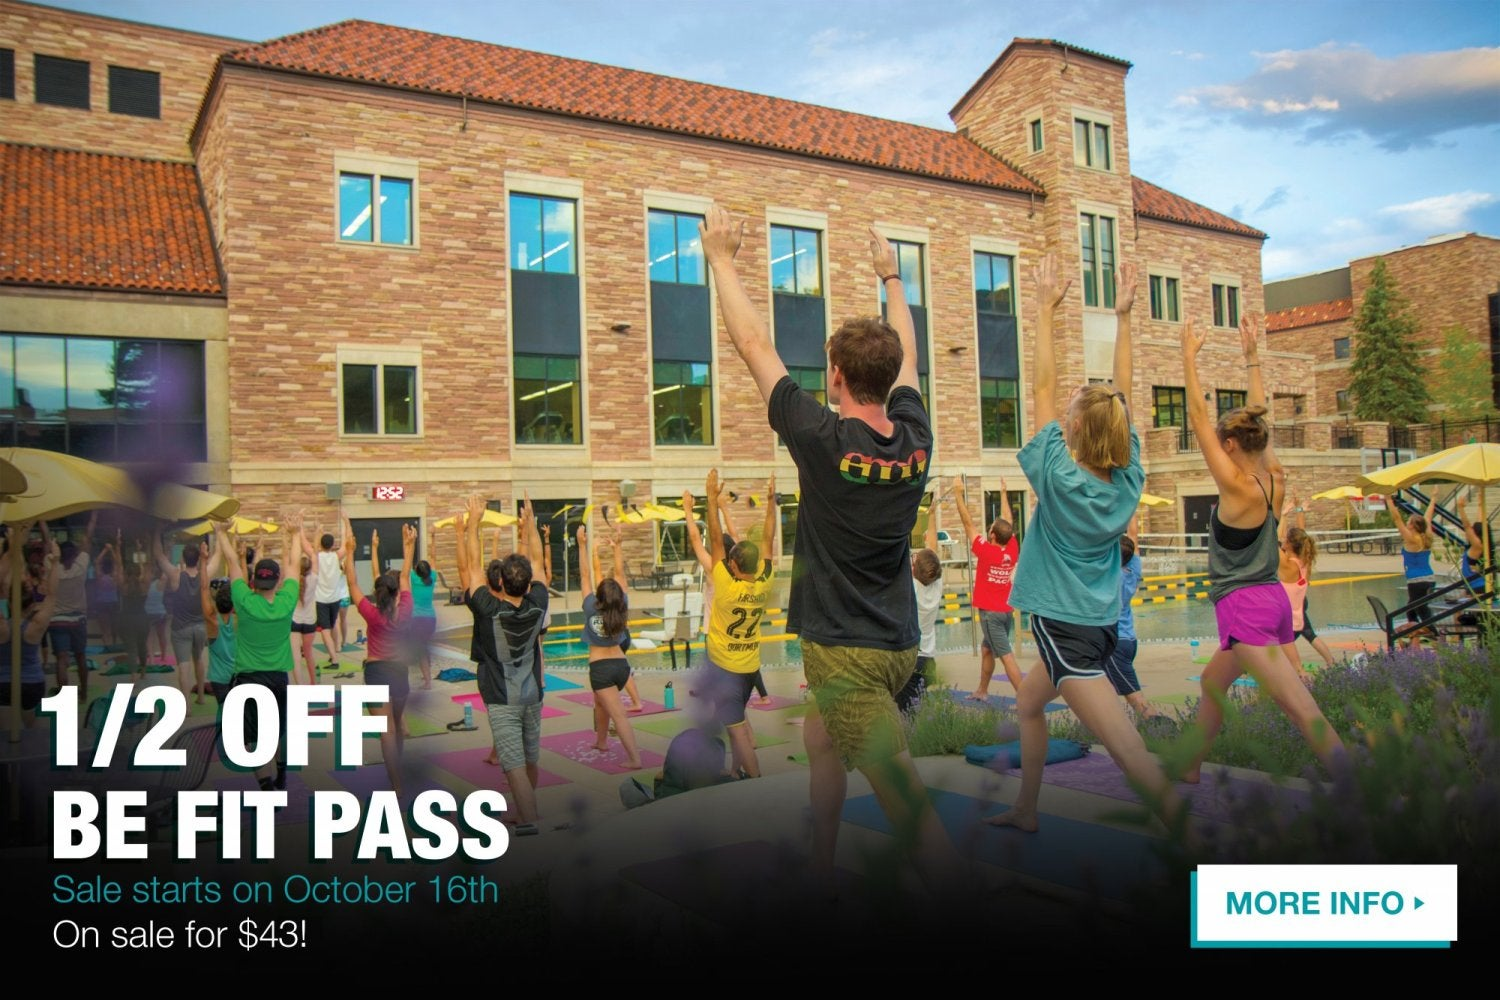 Be Fit pass half off.  Click here for more information